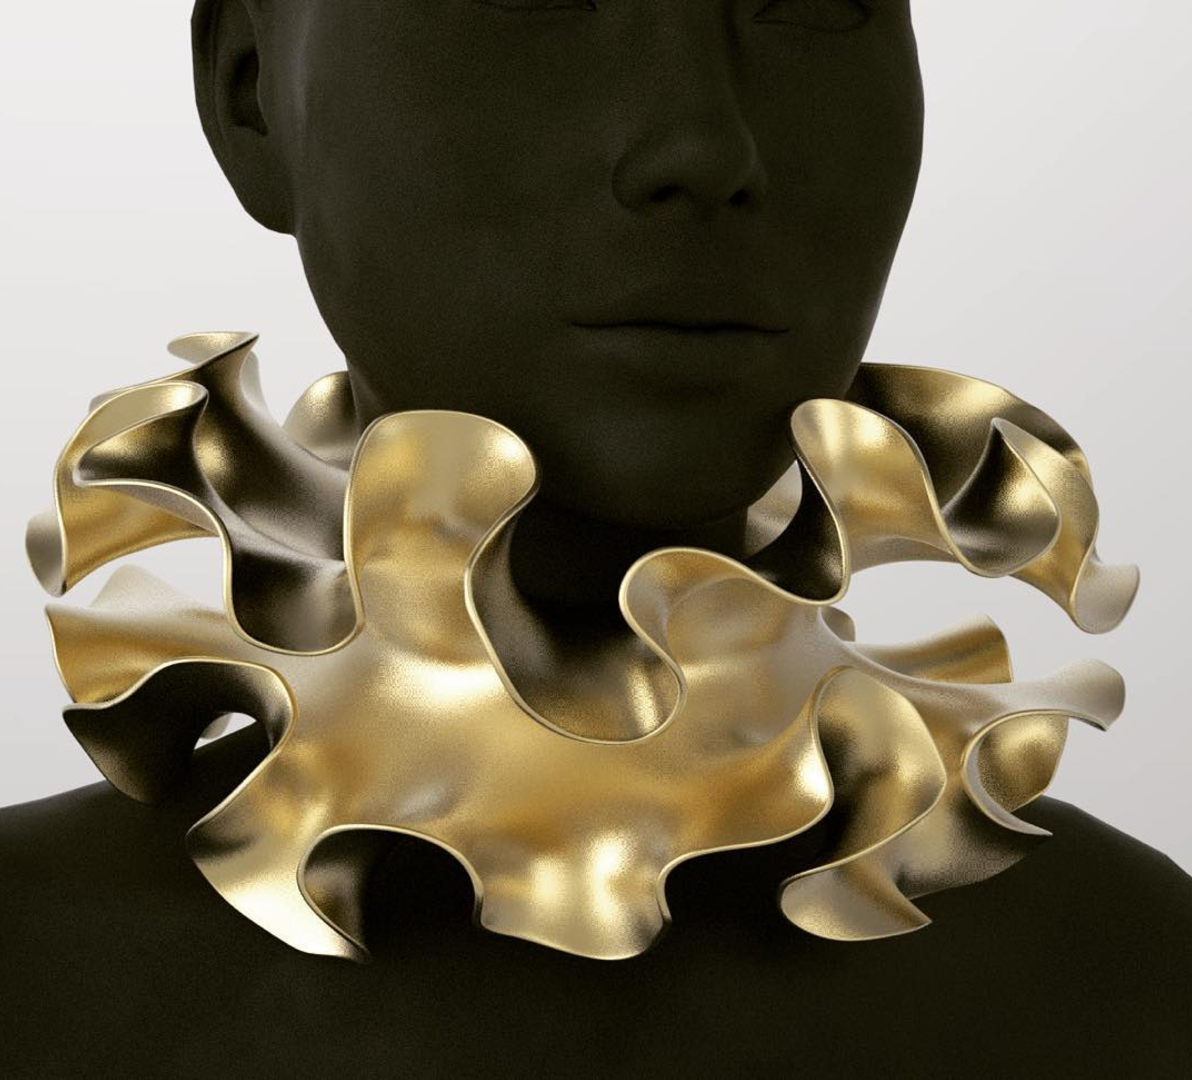 zimarty_3dprint_jewelry_conceptual_design.png